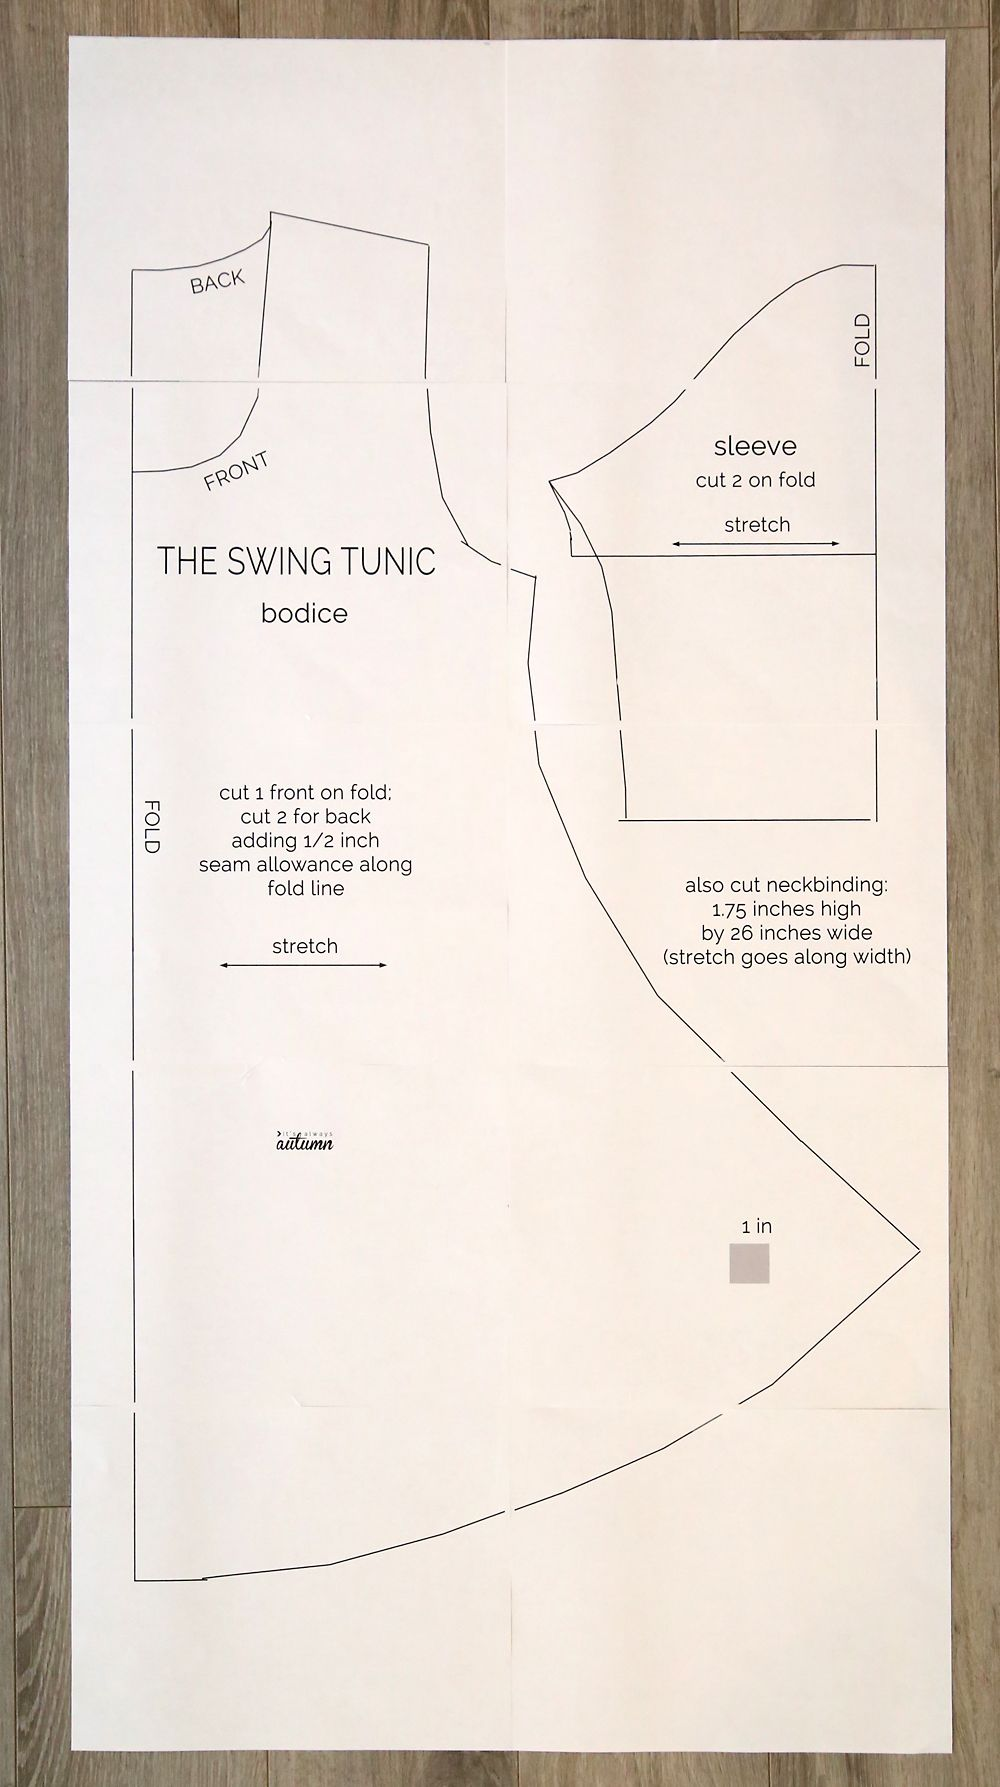 Free swing tunic sewing pattern perfect for leggings tunic free swing tunic sewing pattern perfect for leggings its always autumn jeuxipadfo Image collections